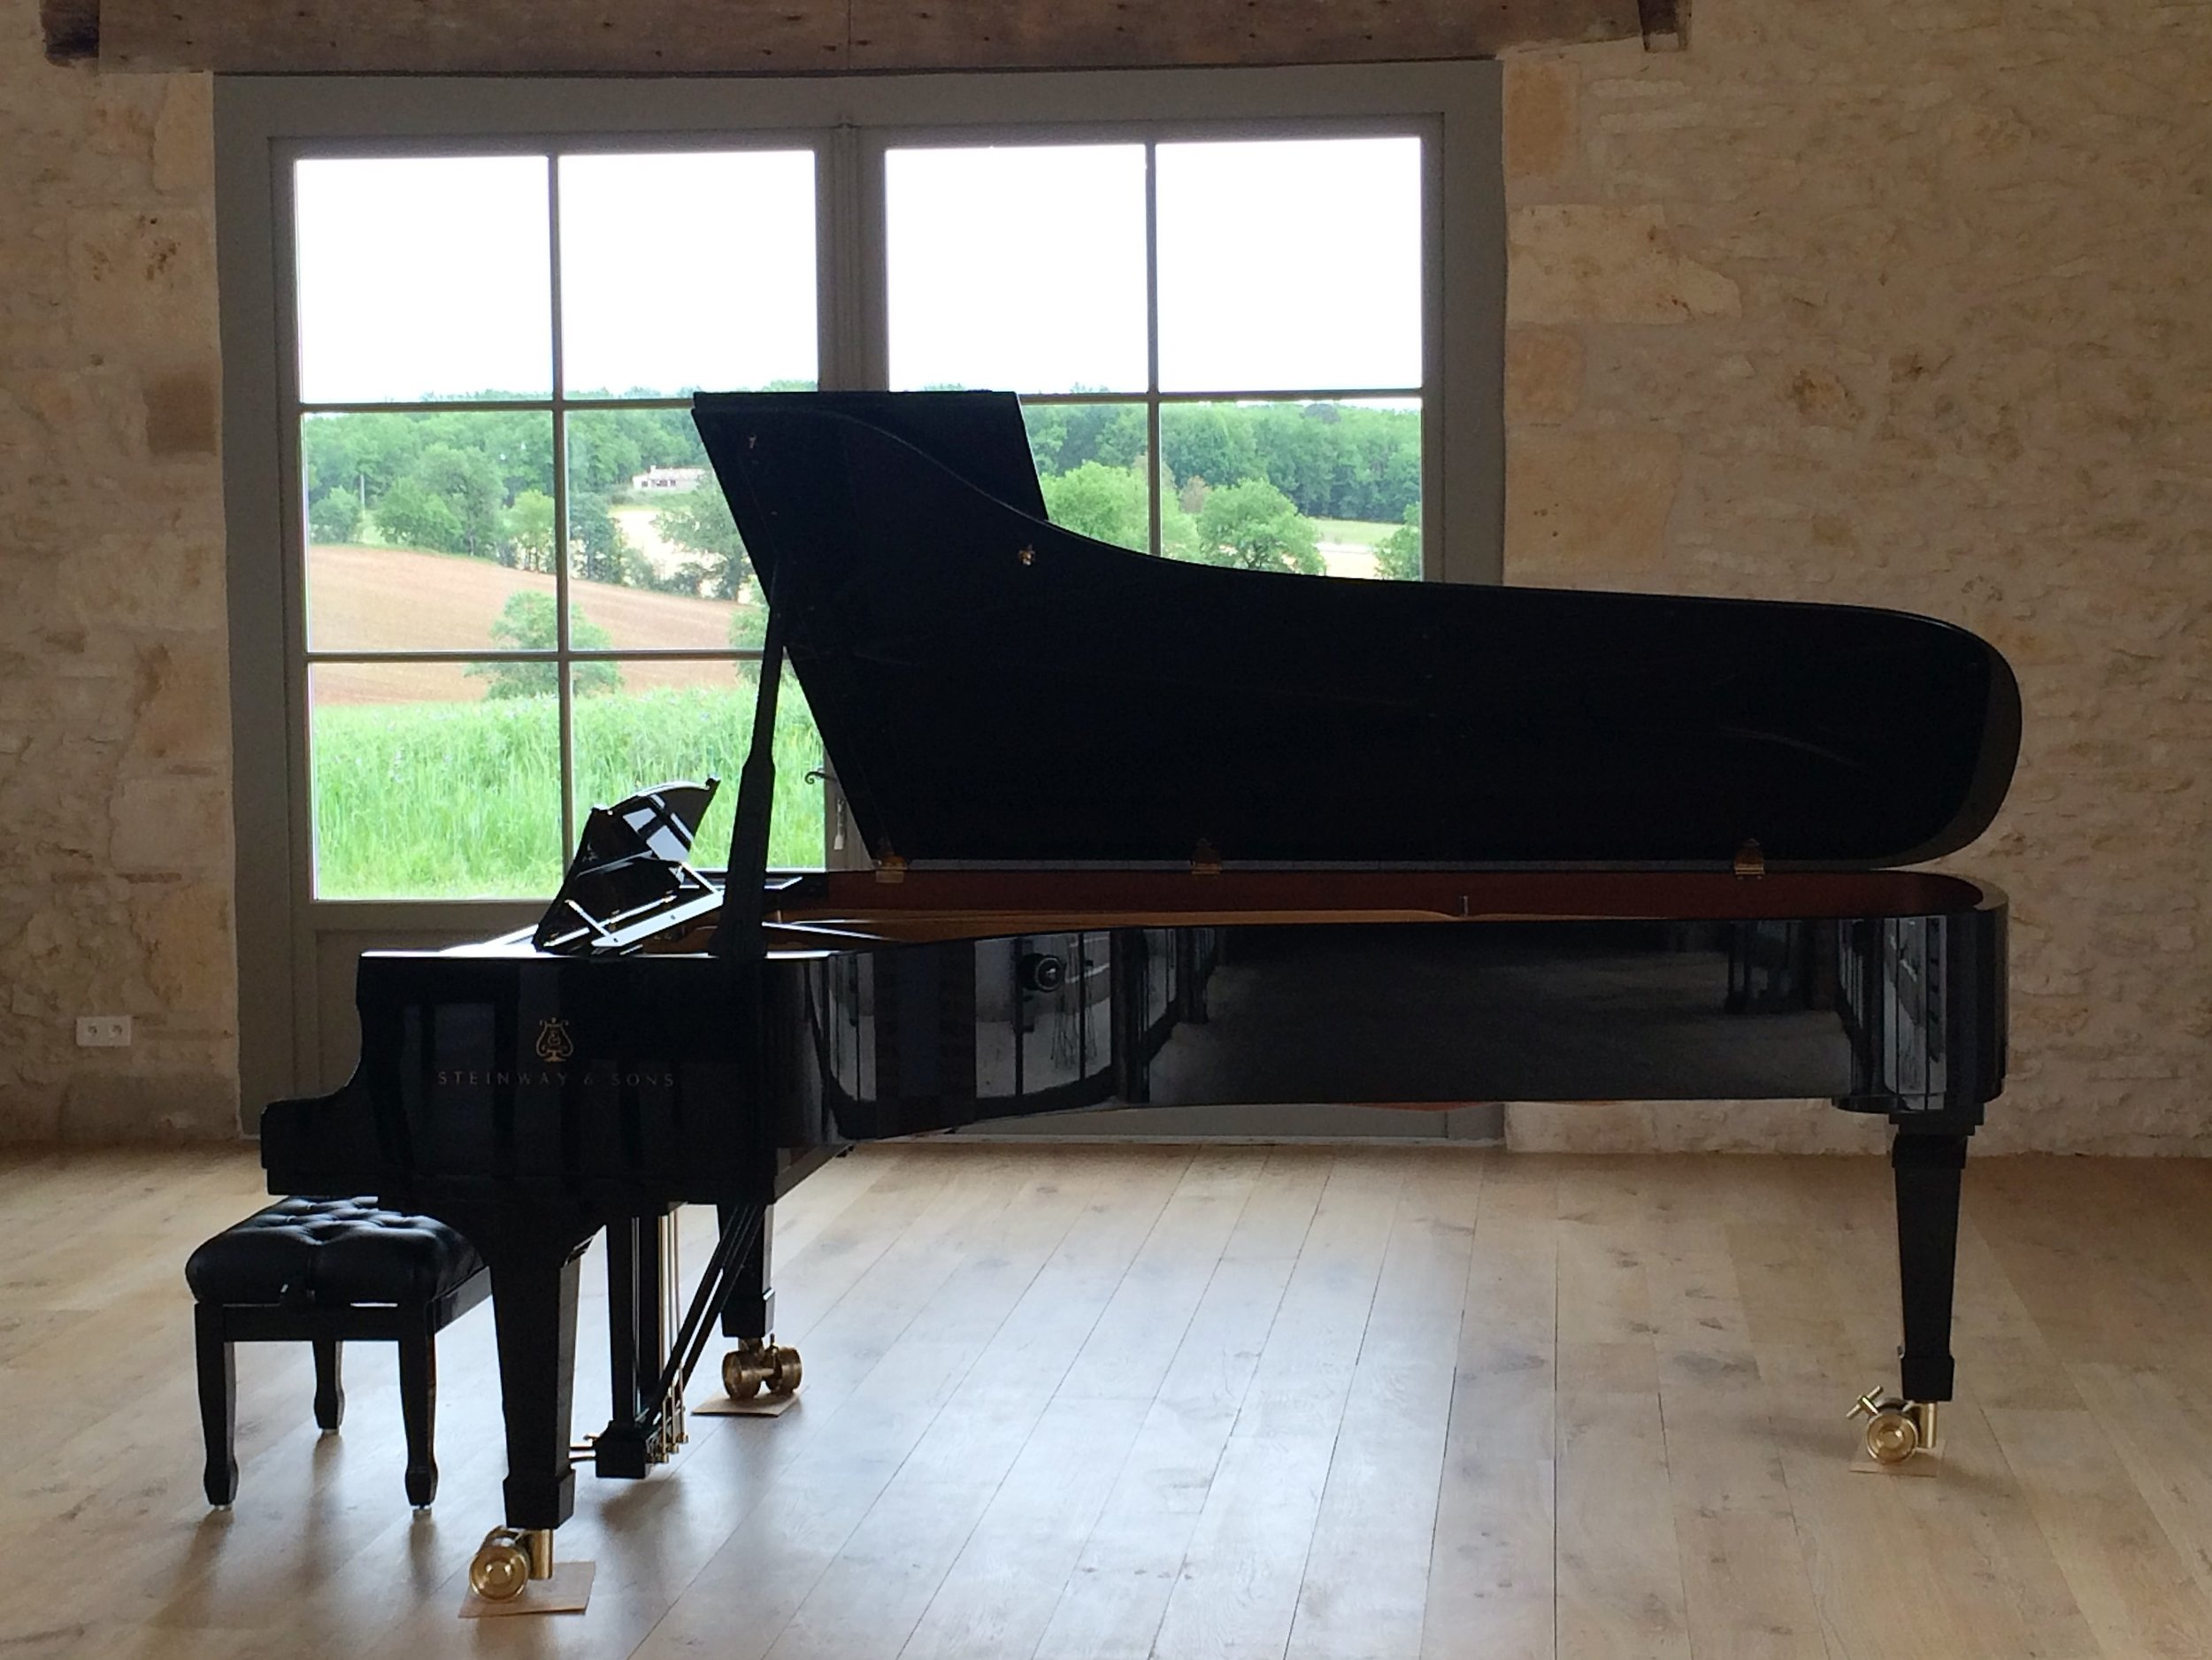 The studio at La Balie, where the master classes, lessons and recitals take place